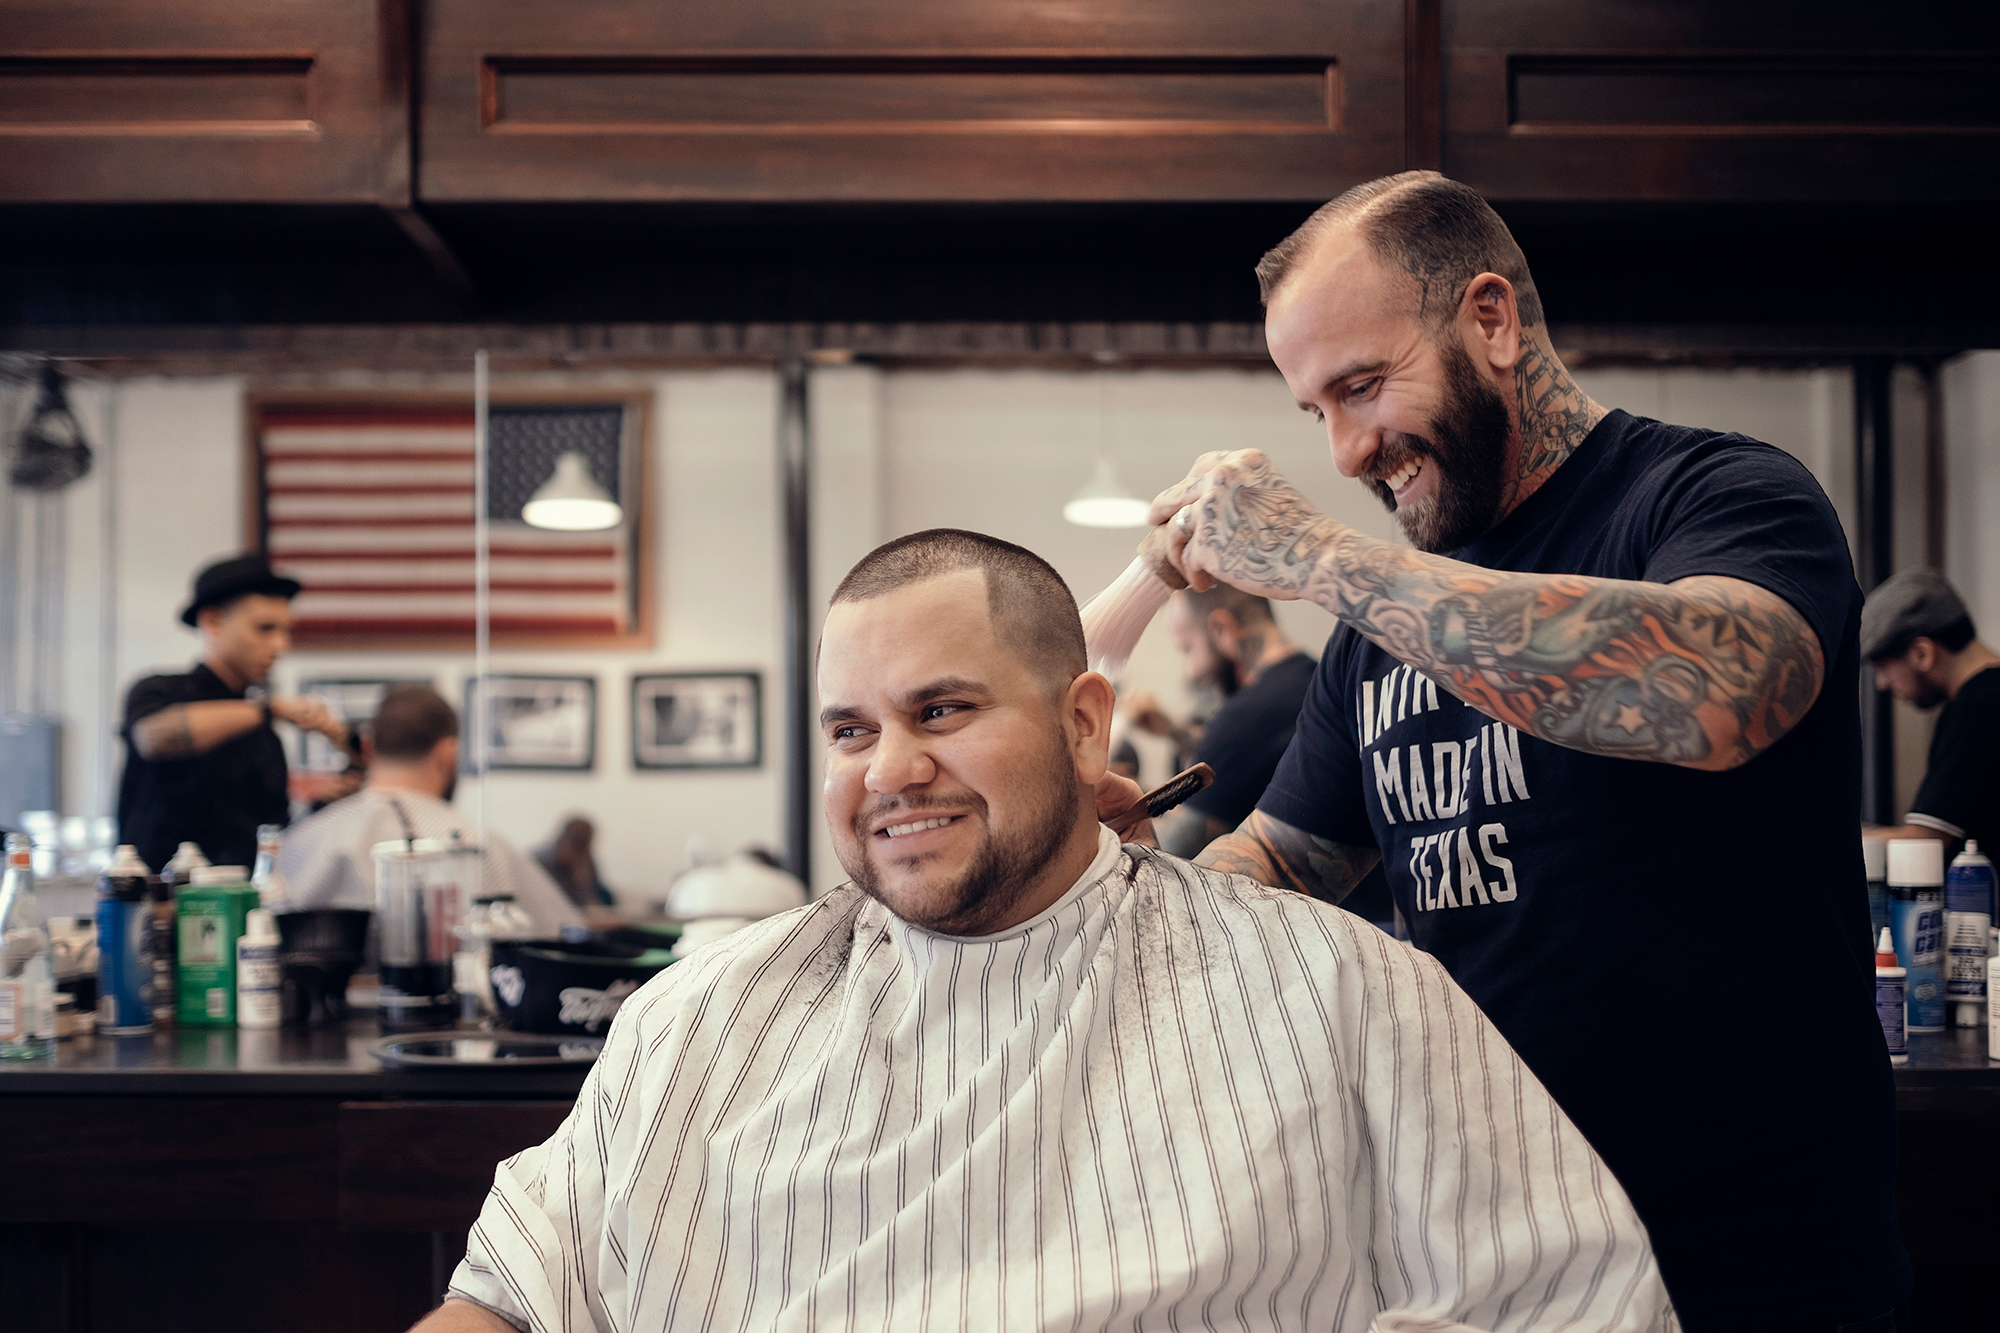 Ryan Chase Taylor, barber and owner of East End Barber, photographed at work by Houston photographer, Todd Spoth.